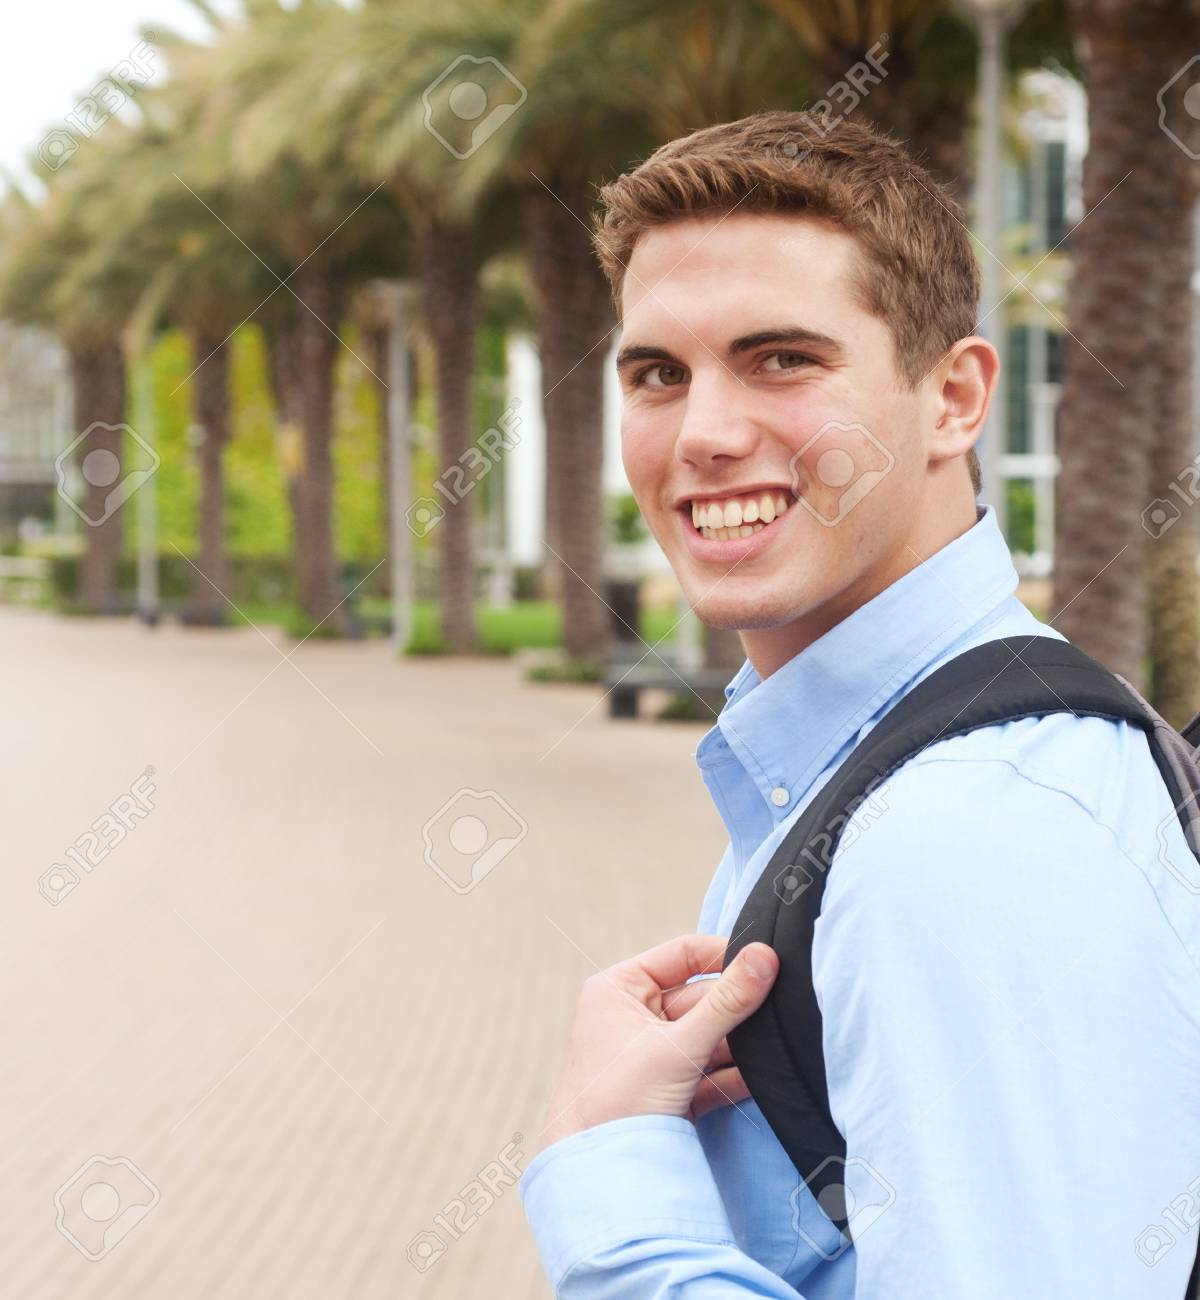 portrait of a young college student on campus Stock Photo - 13675638